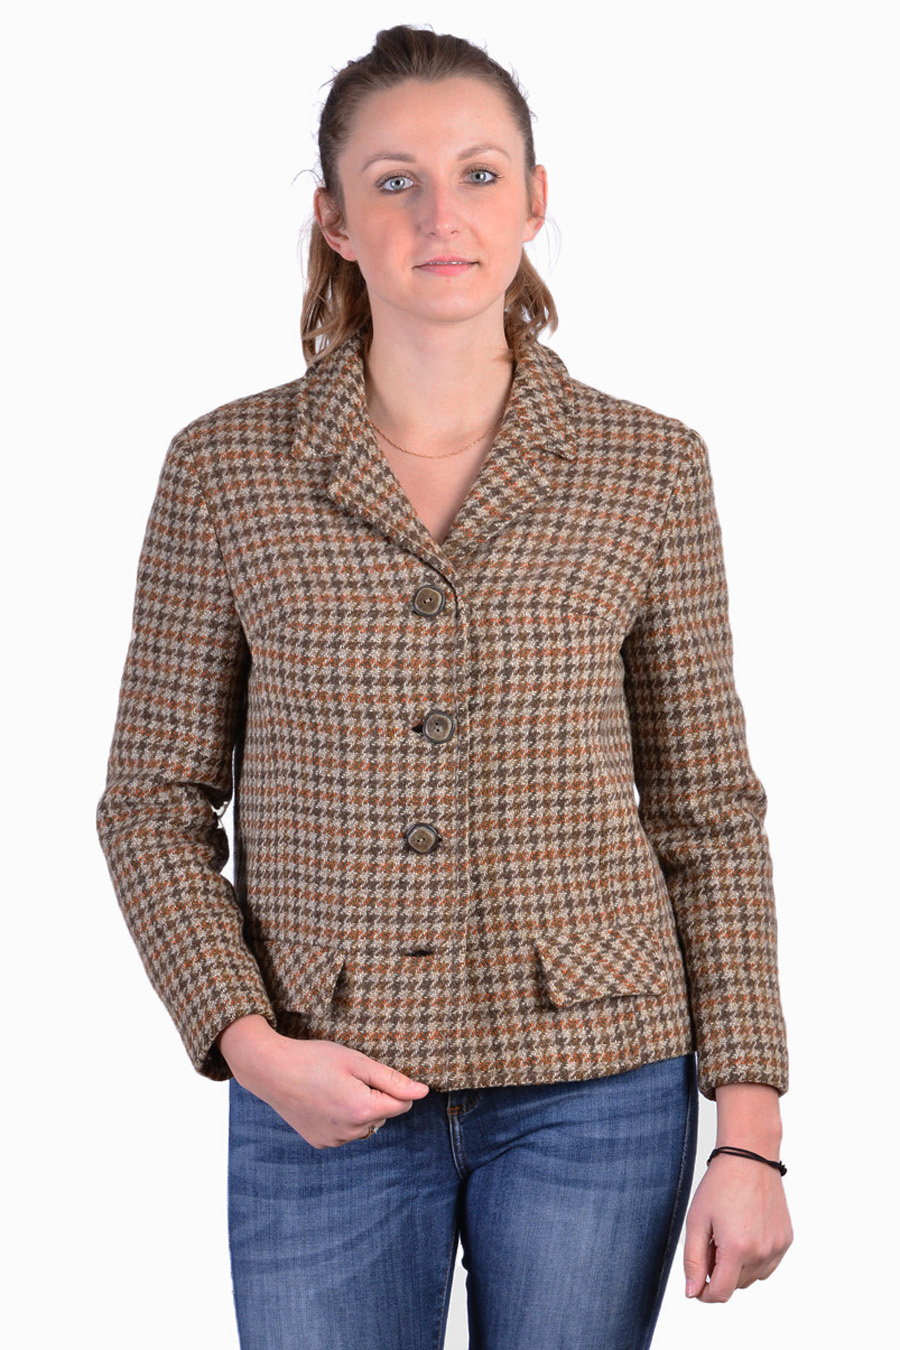 Vintage Jimmy Hourihan tweed jacket